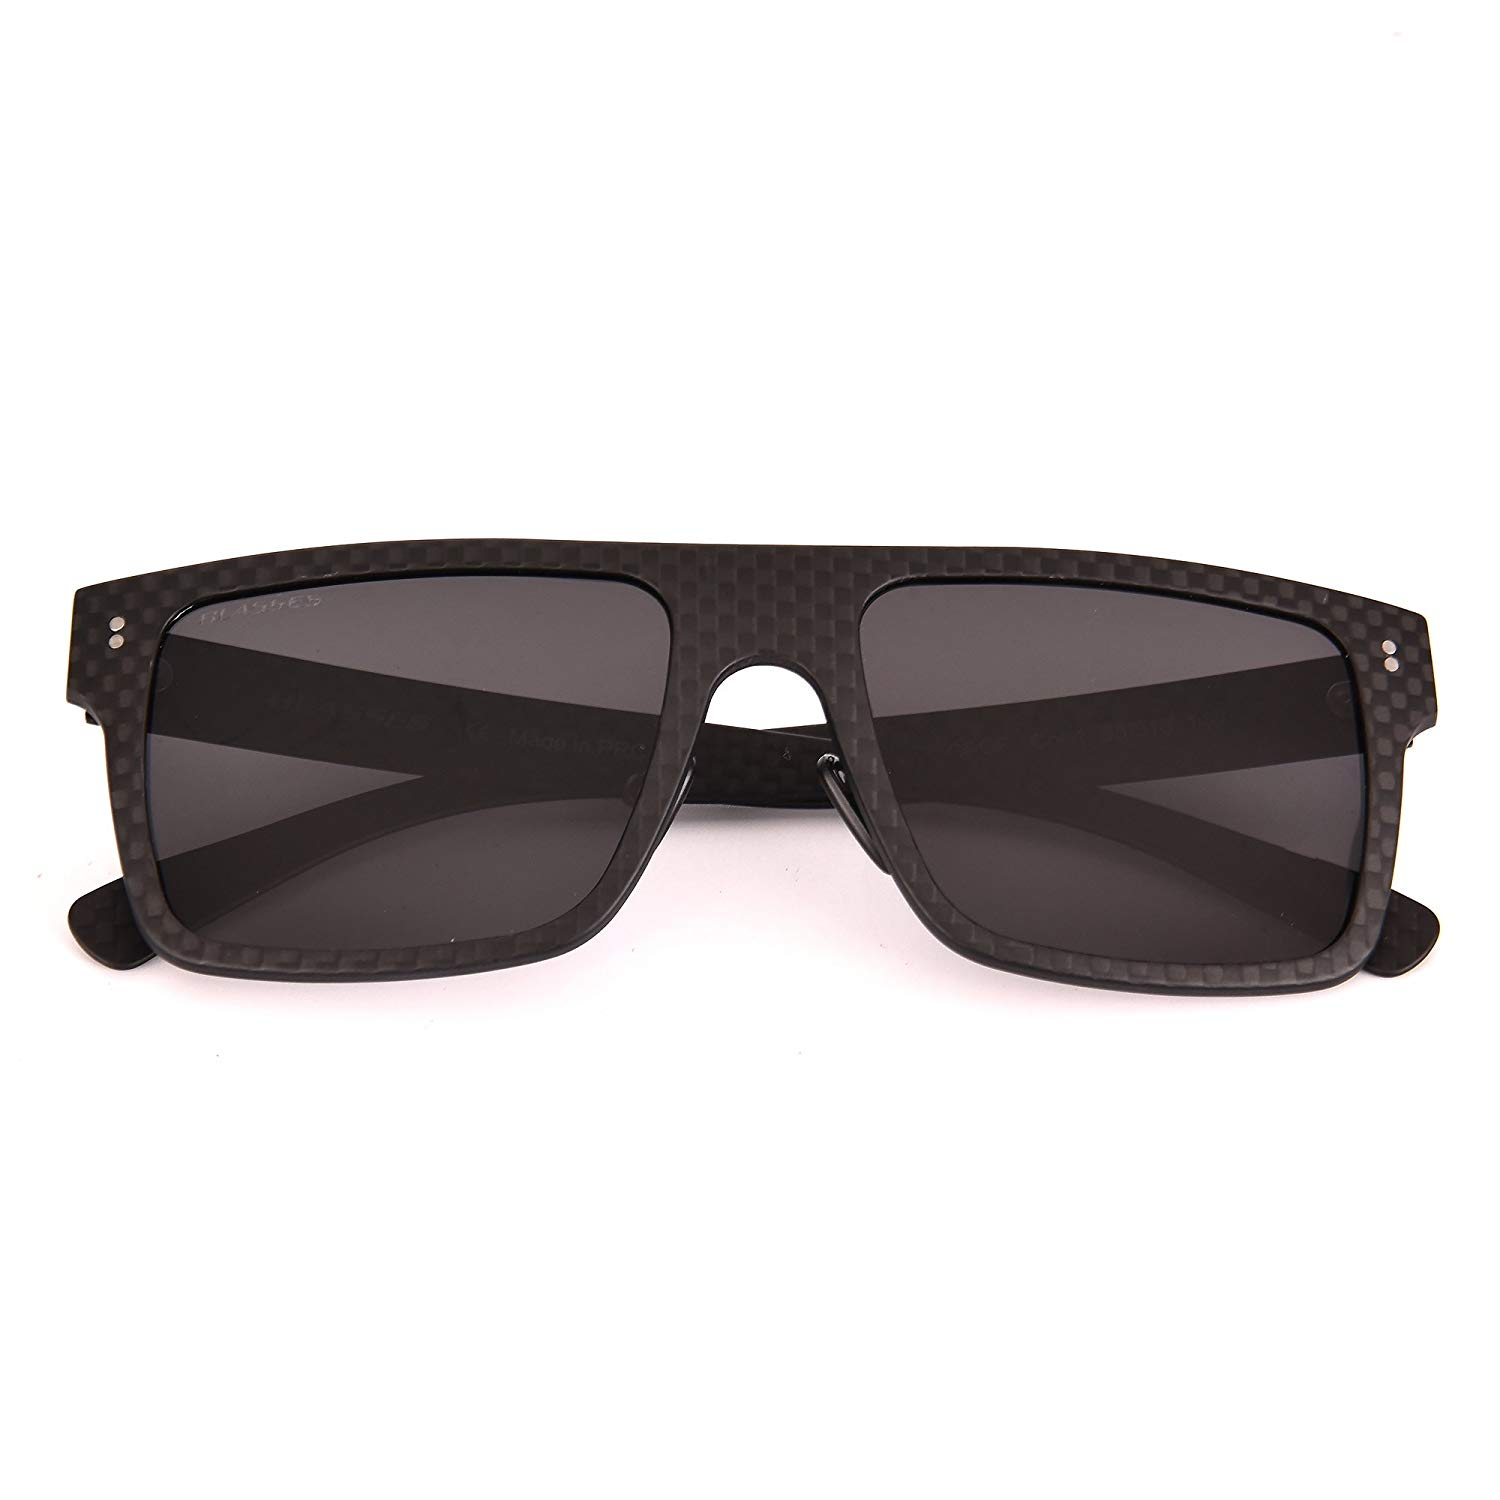 29b4619f58 Get Quotations · BLASSES Square Men Women Sunglasses Polarized Carbon Fiber  Sunglasses for Outdoor